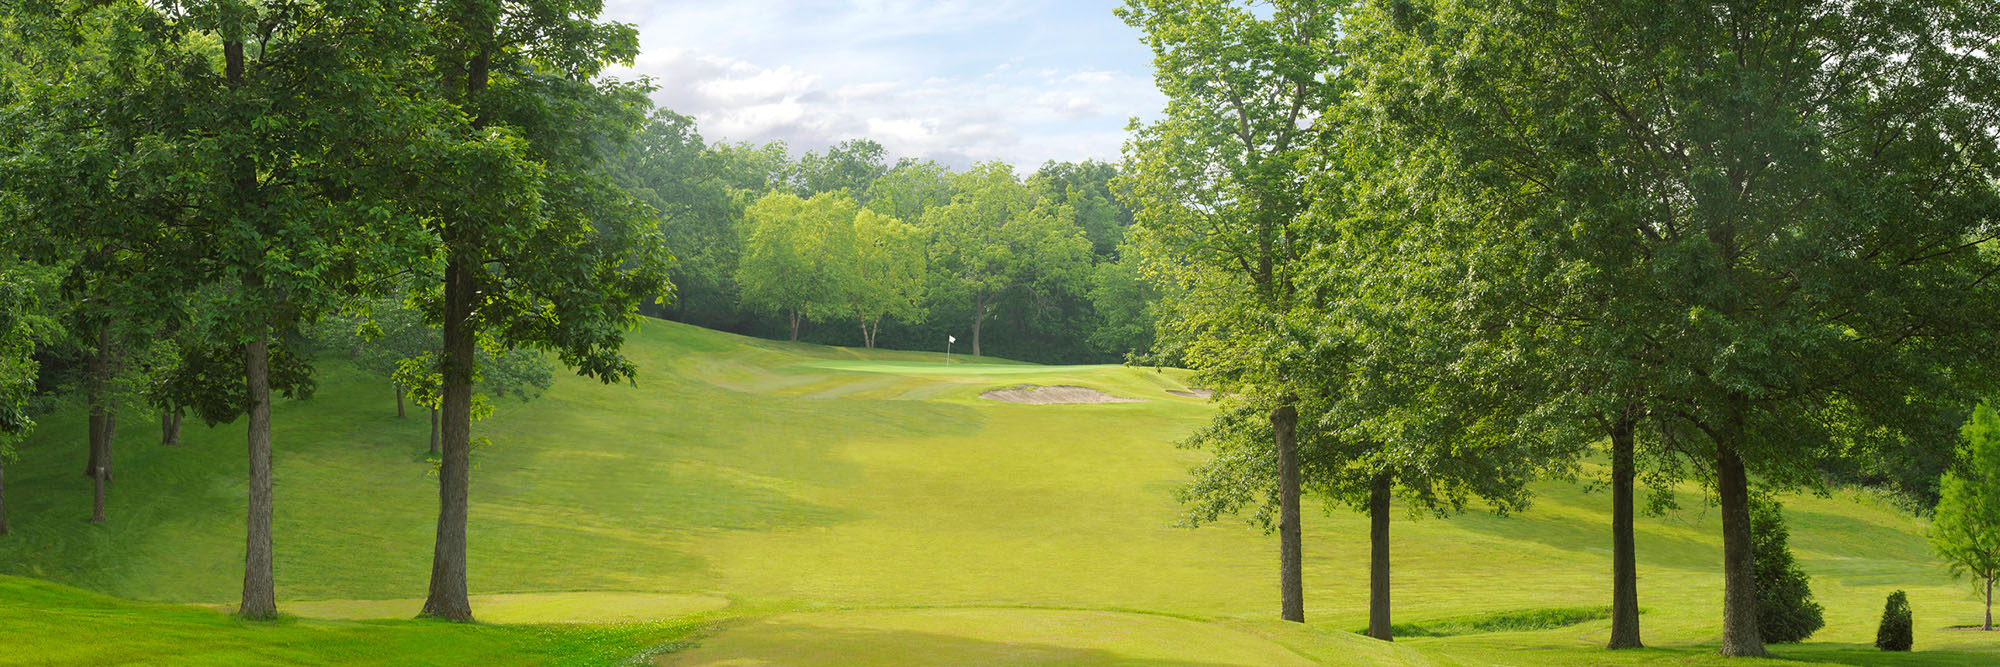 Golf Course Image - Oakwood Country Club No. 5